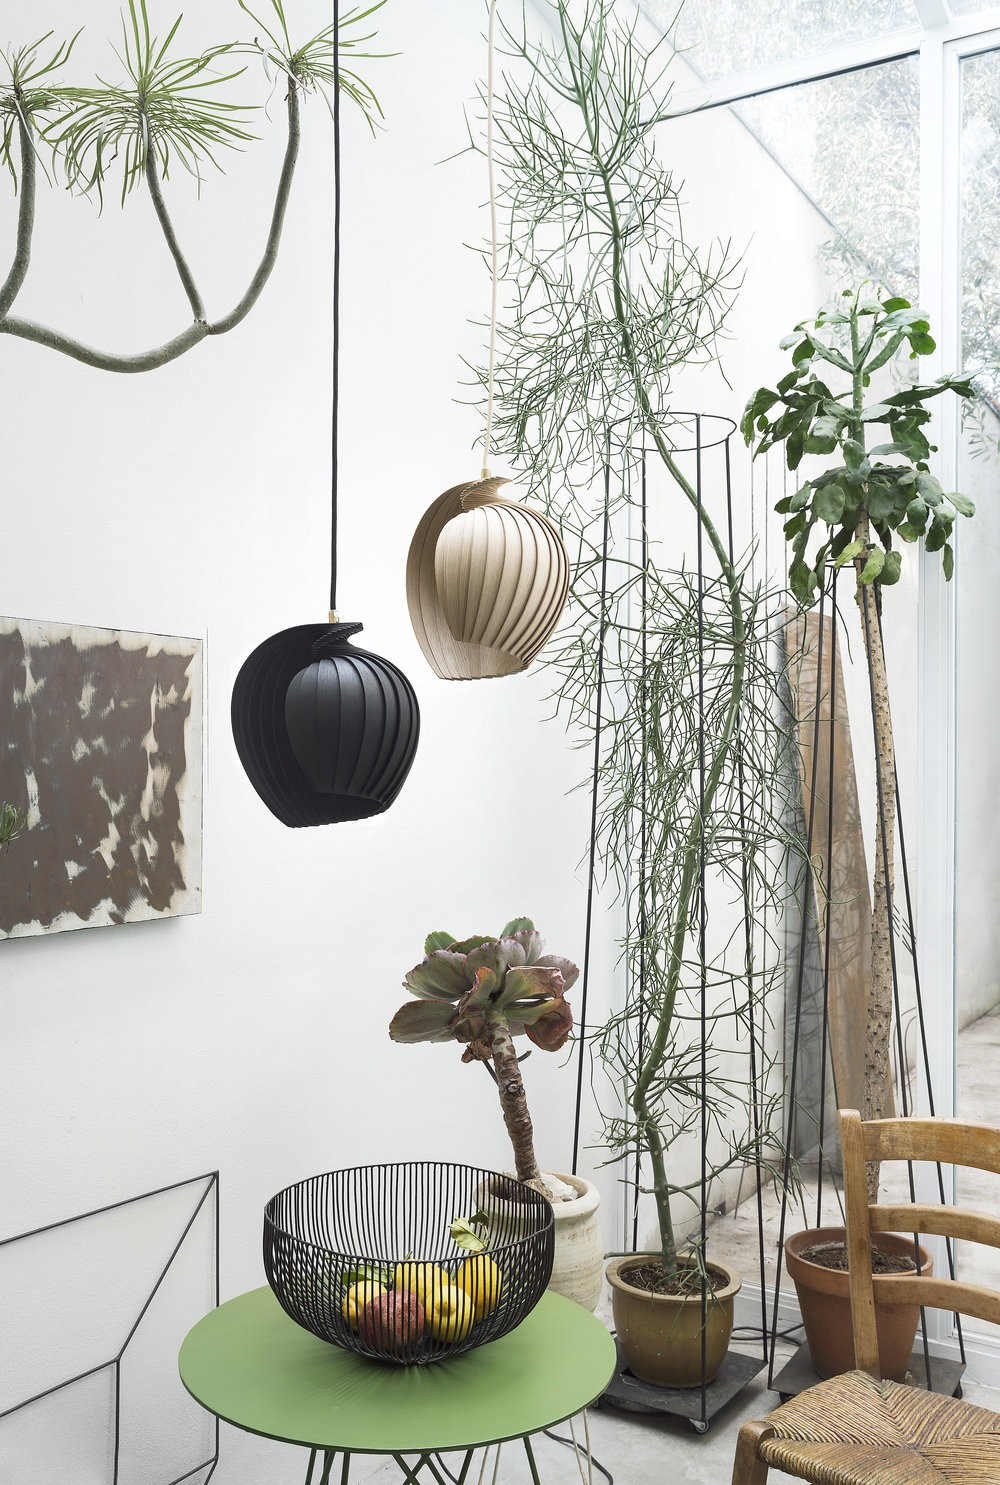 Top 10 Italian Interior Designers Whose Work One Ought to Know 5 italian interior designers Top 10 Italian Interior Designers Whose Work One Ought to Know Top 10 Italian Interior Designers Whose Work One Ought to Know 5